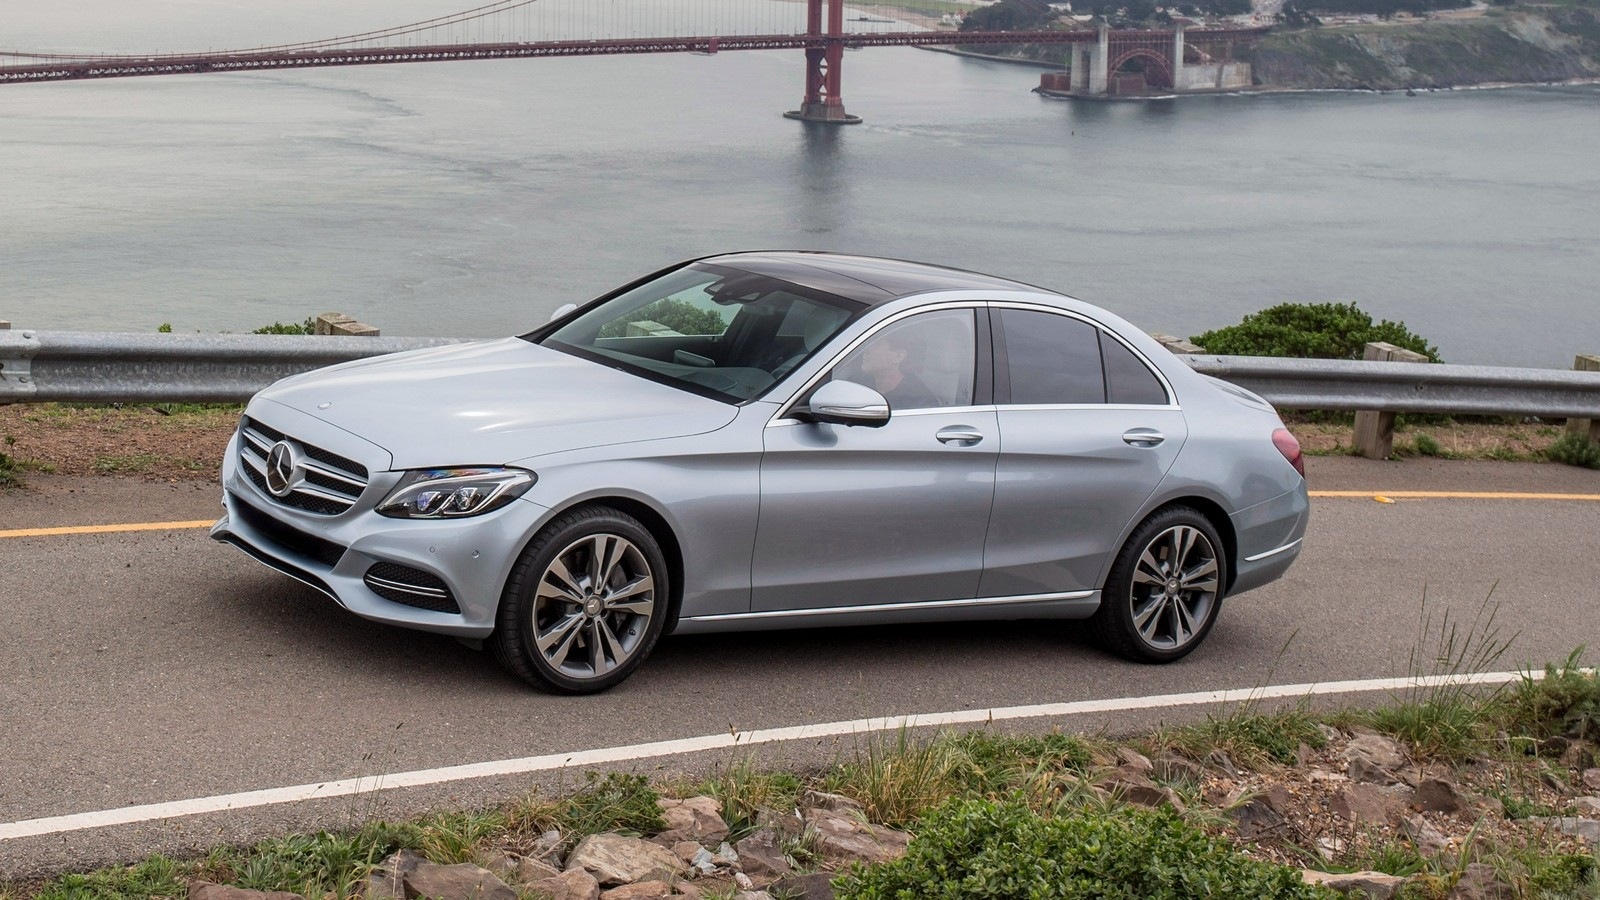 Mercedes-Benz C 350 e Avantgarde Line Worldwide (W205)